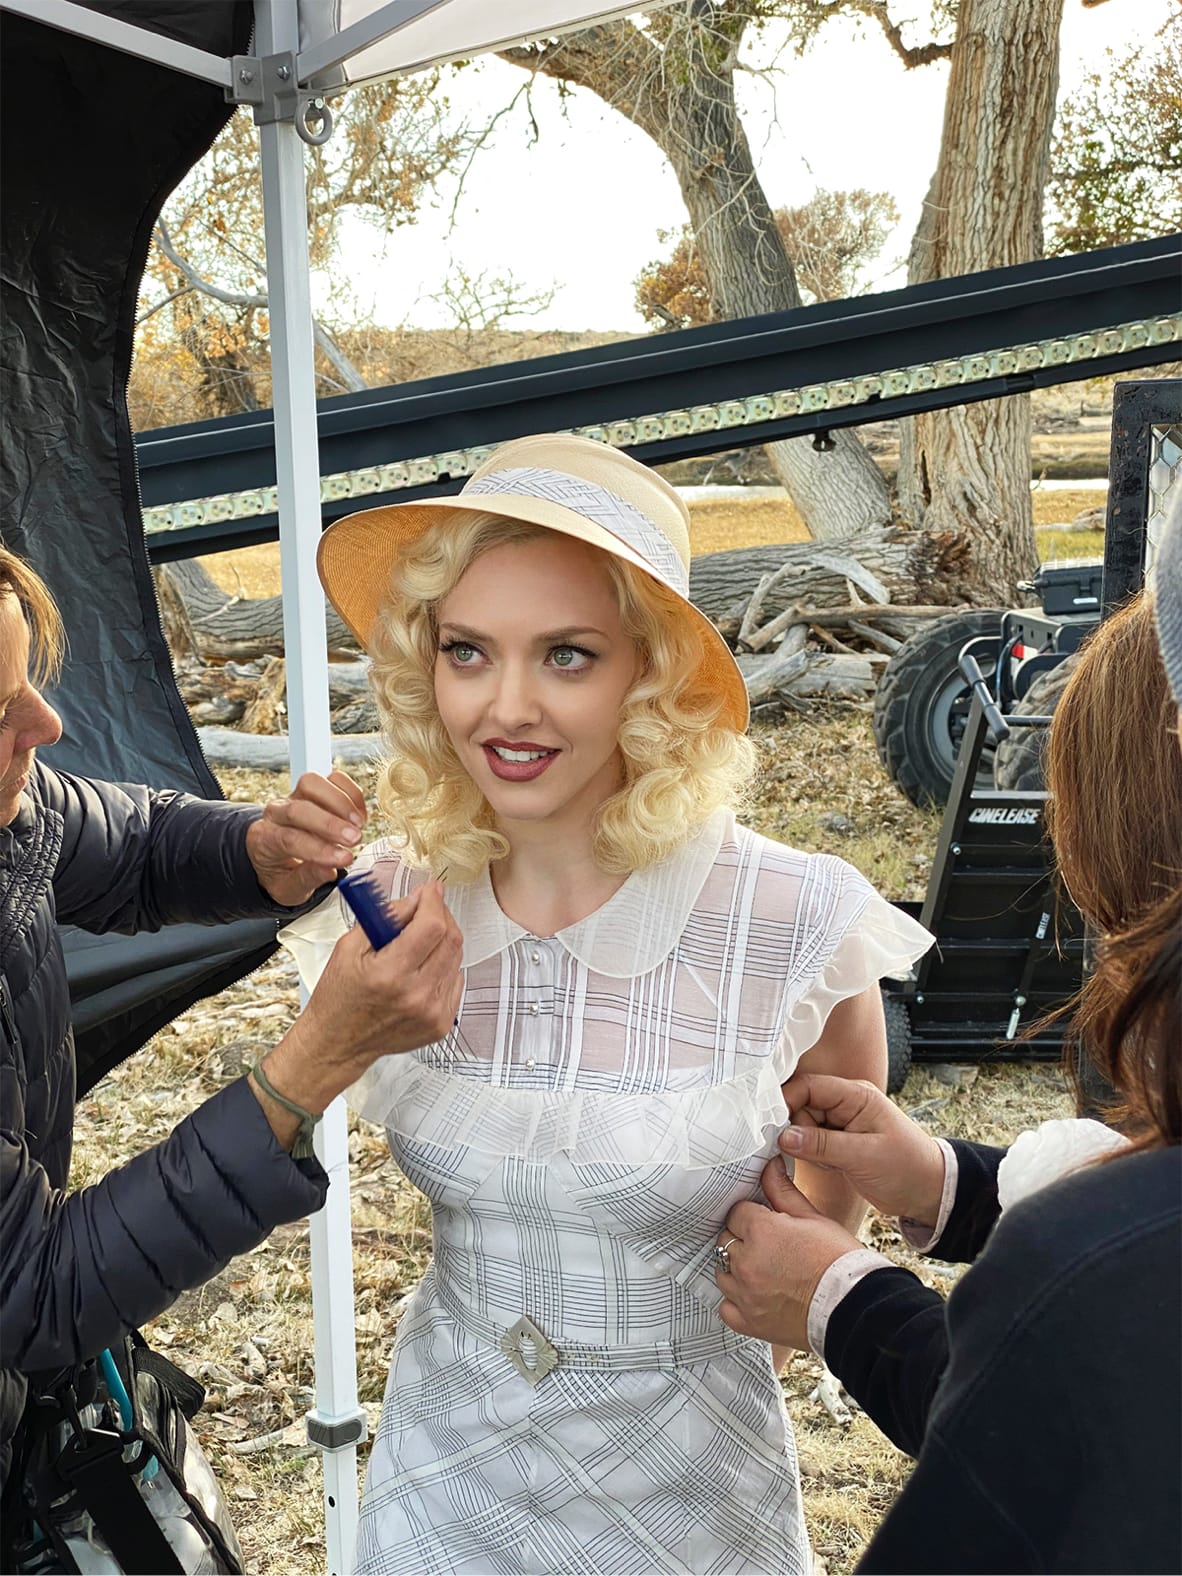 Amanda Seyfried in costume. She has straw-yellow locks, which are being combed as we speak, and is wearing a white dress, which appears to be getting it's final alterations.